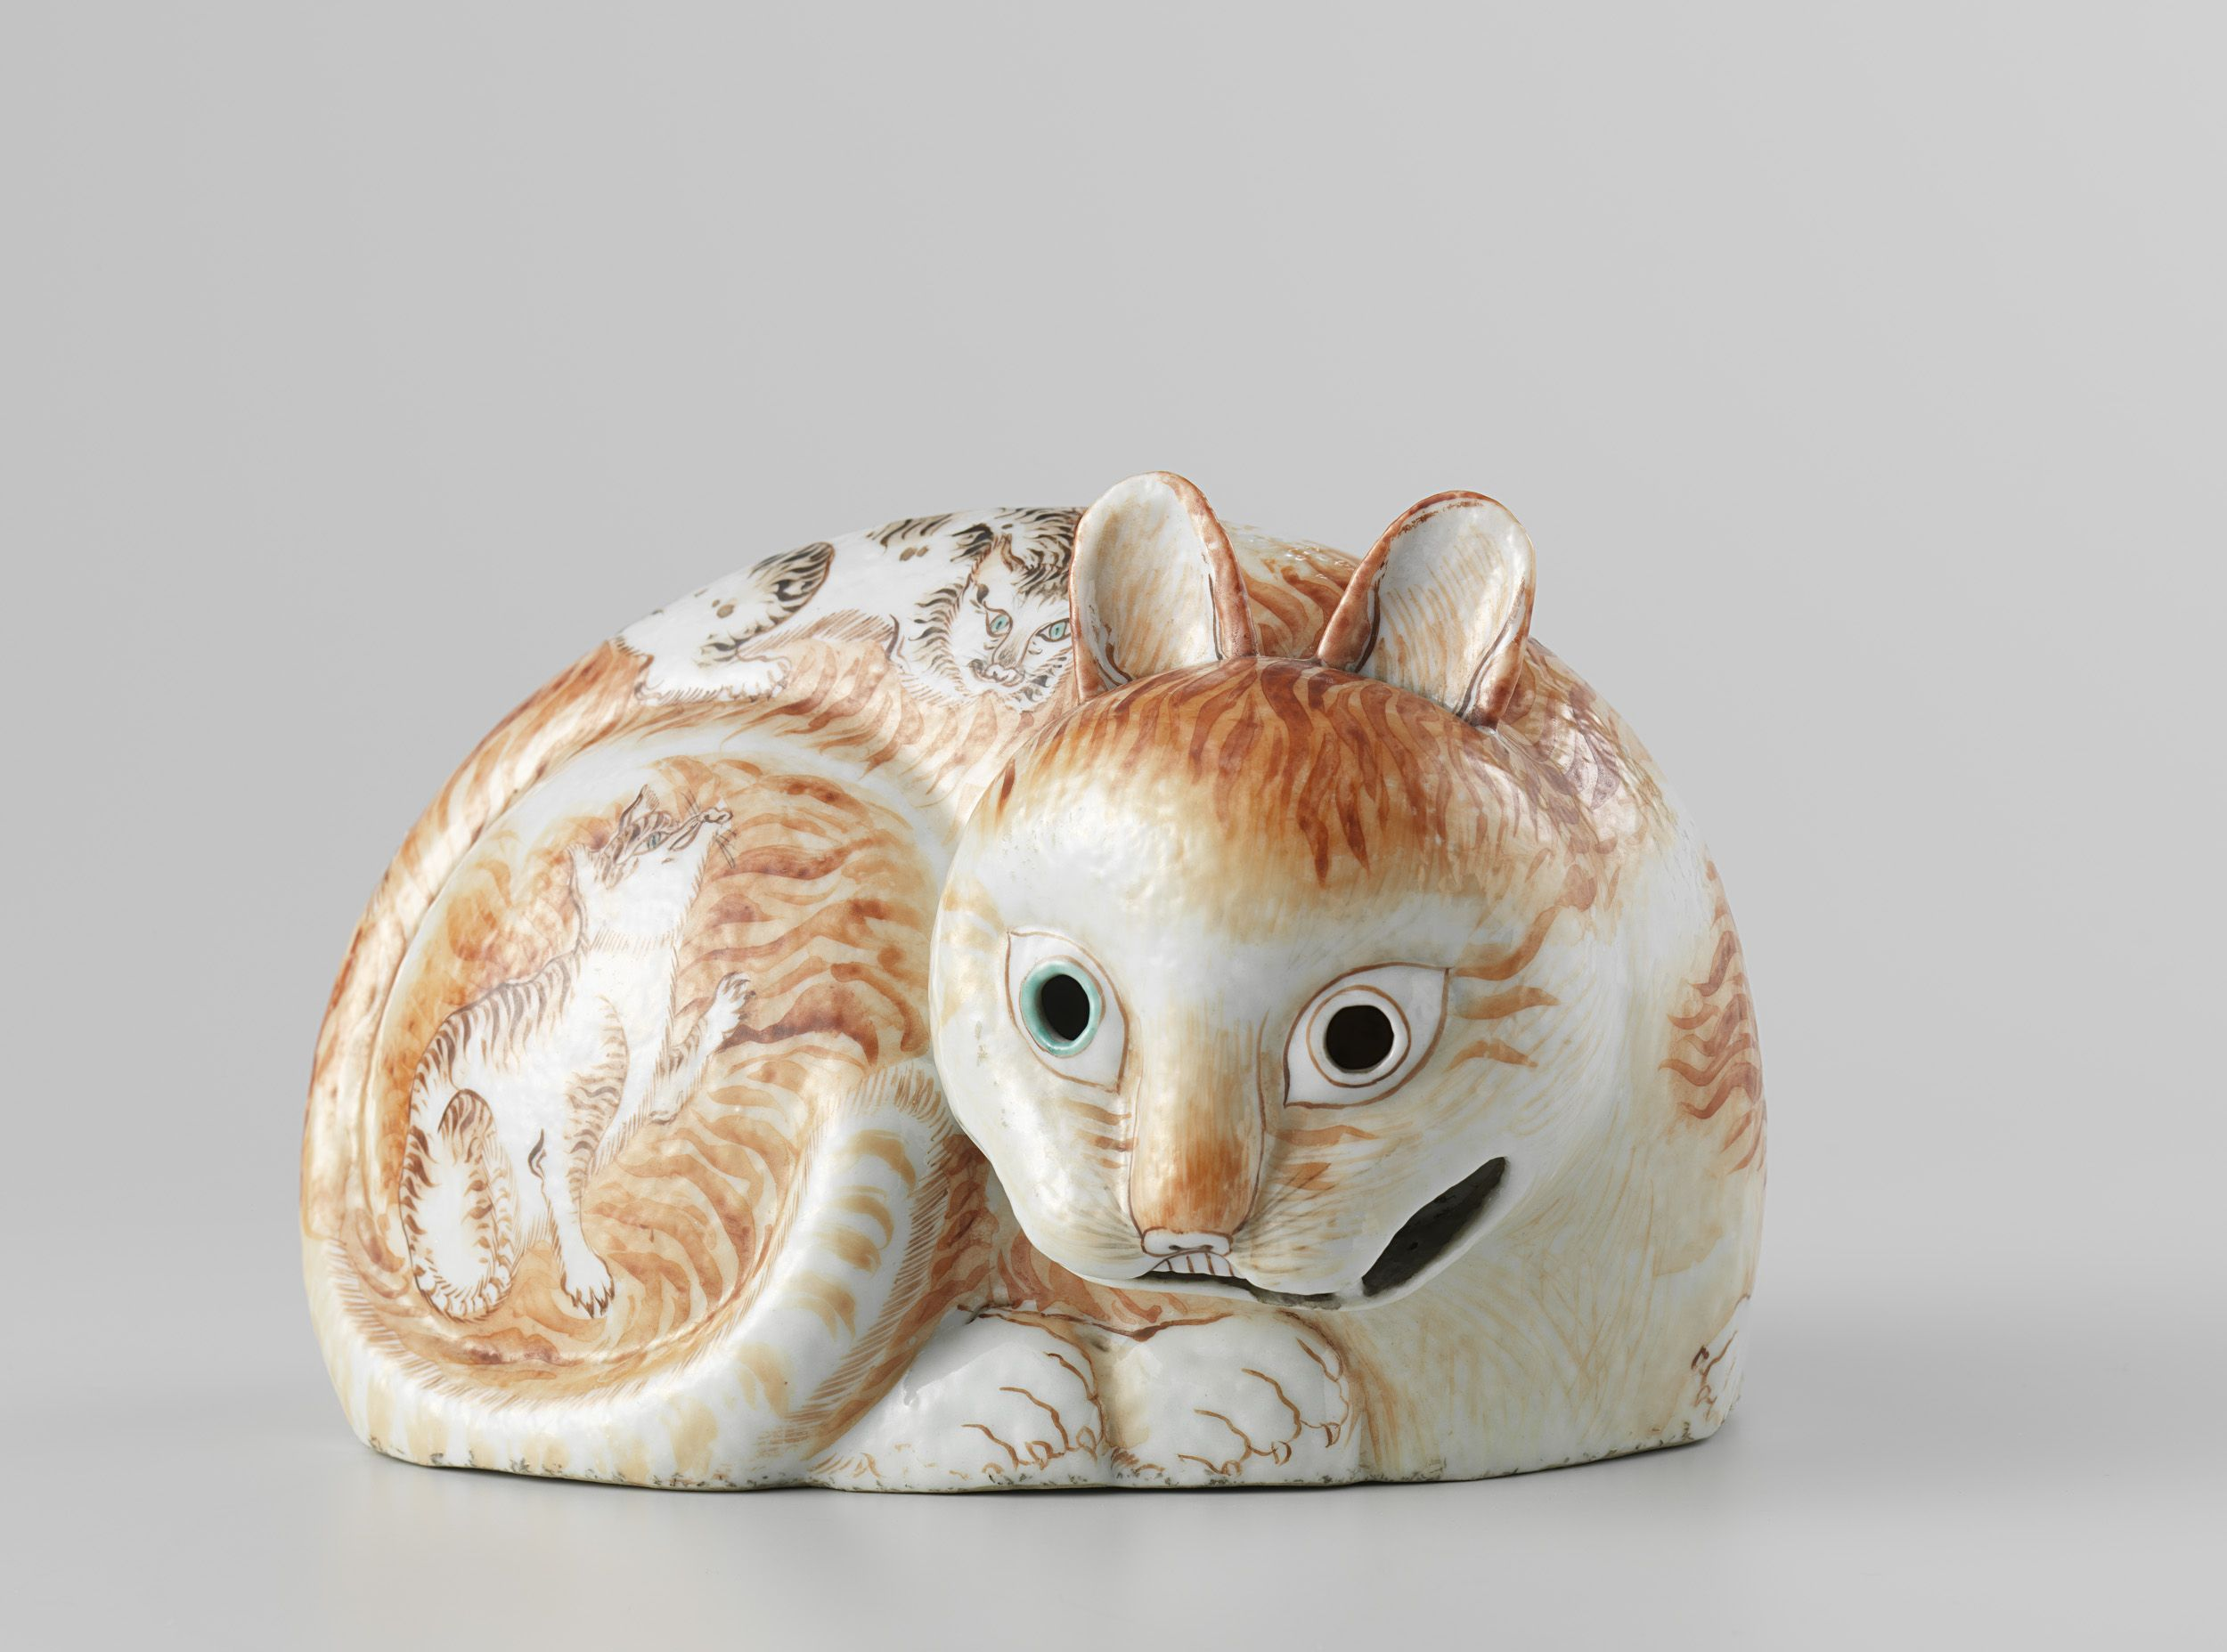 Nightlight in the form of a cat | c.1760-c.1770 |  Rijksmuseum | Public Domain